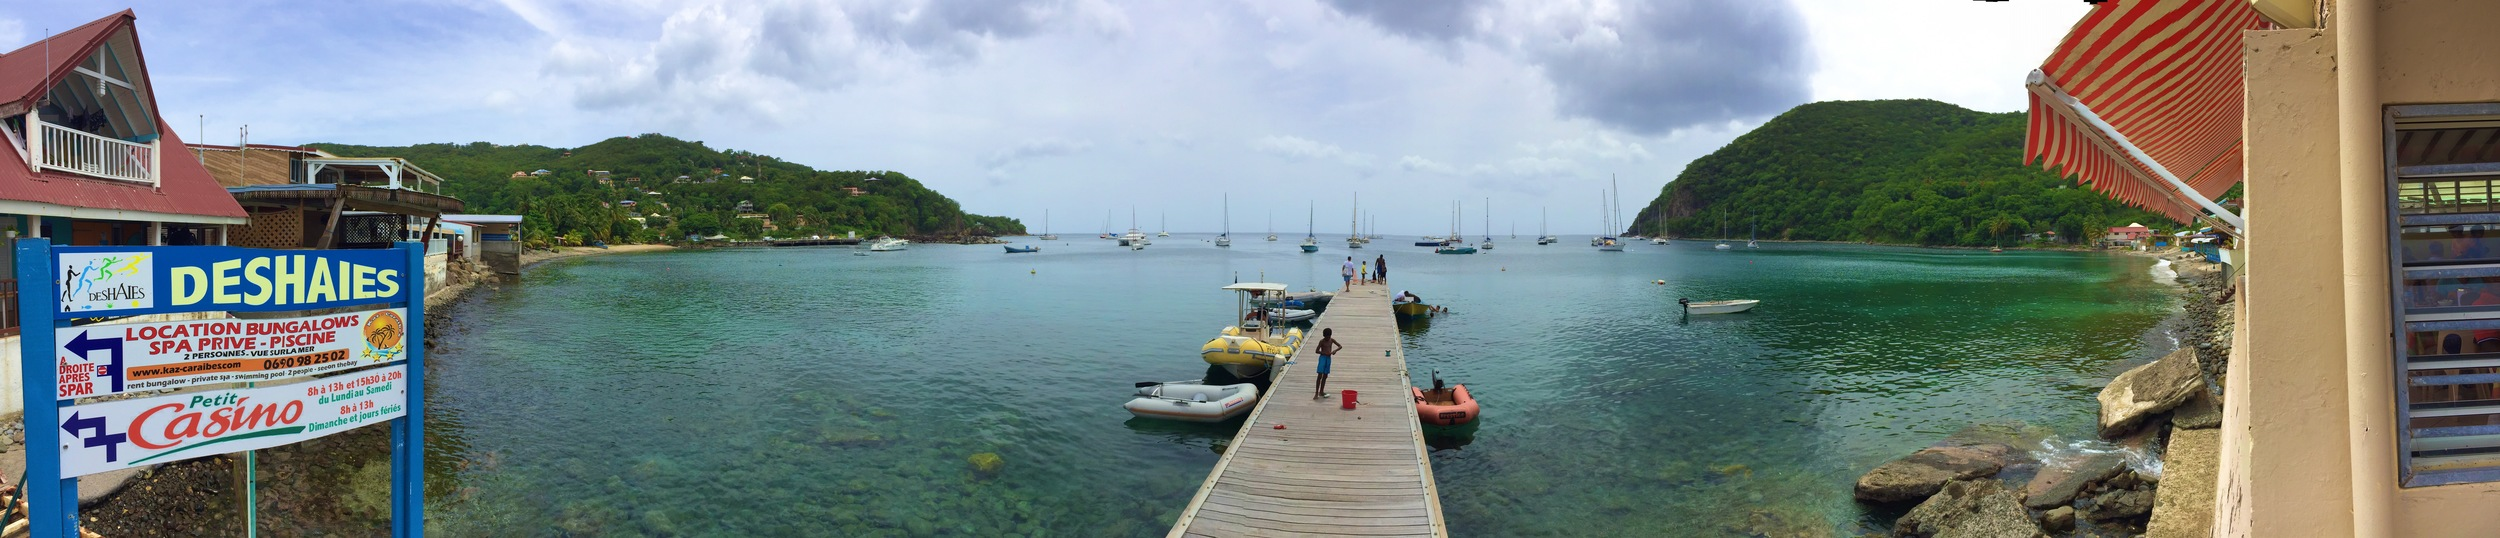 Anchorage in Deshais, Guadeloupe